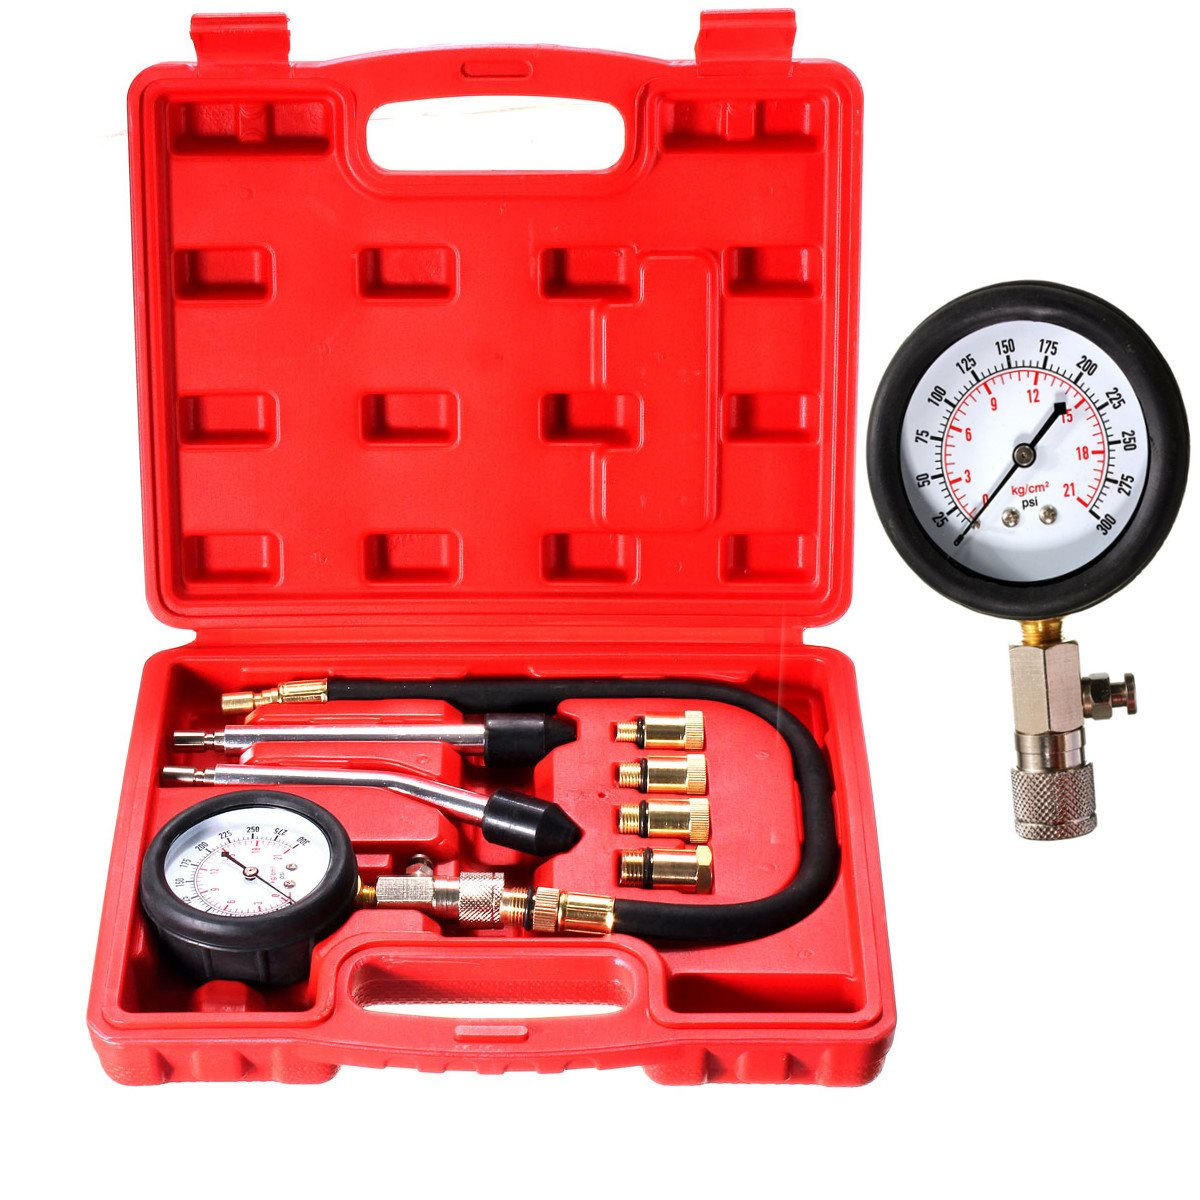 automotive petrol engine compression tester test kit gauge motorcycle tool valve in decals. Black Bedroom Furniture Sets. Home Design Ideas